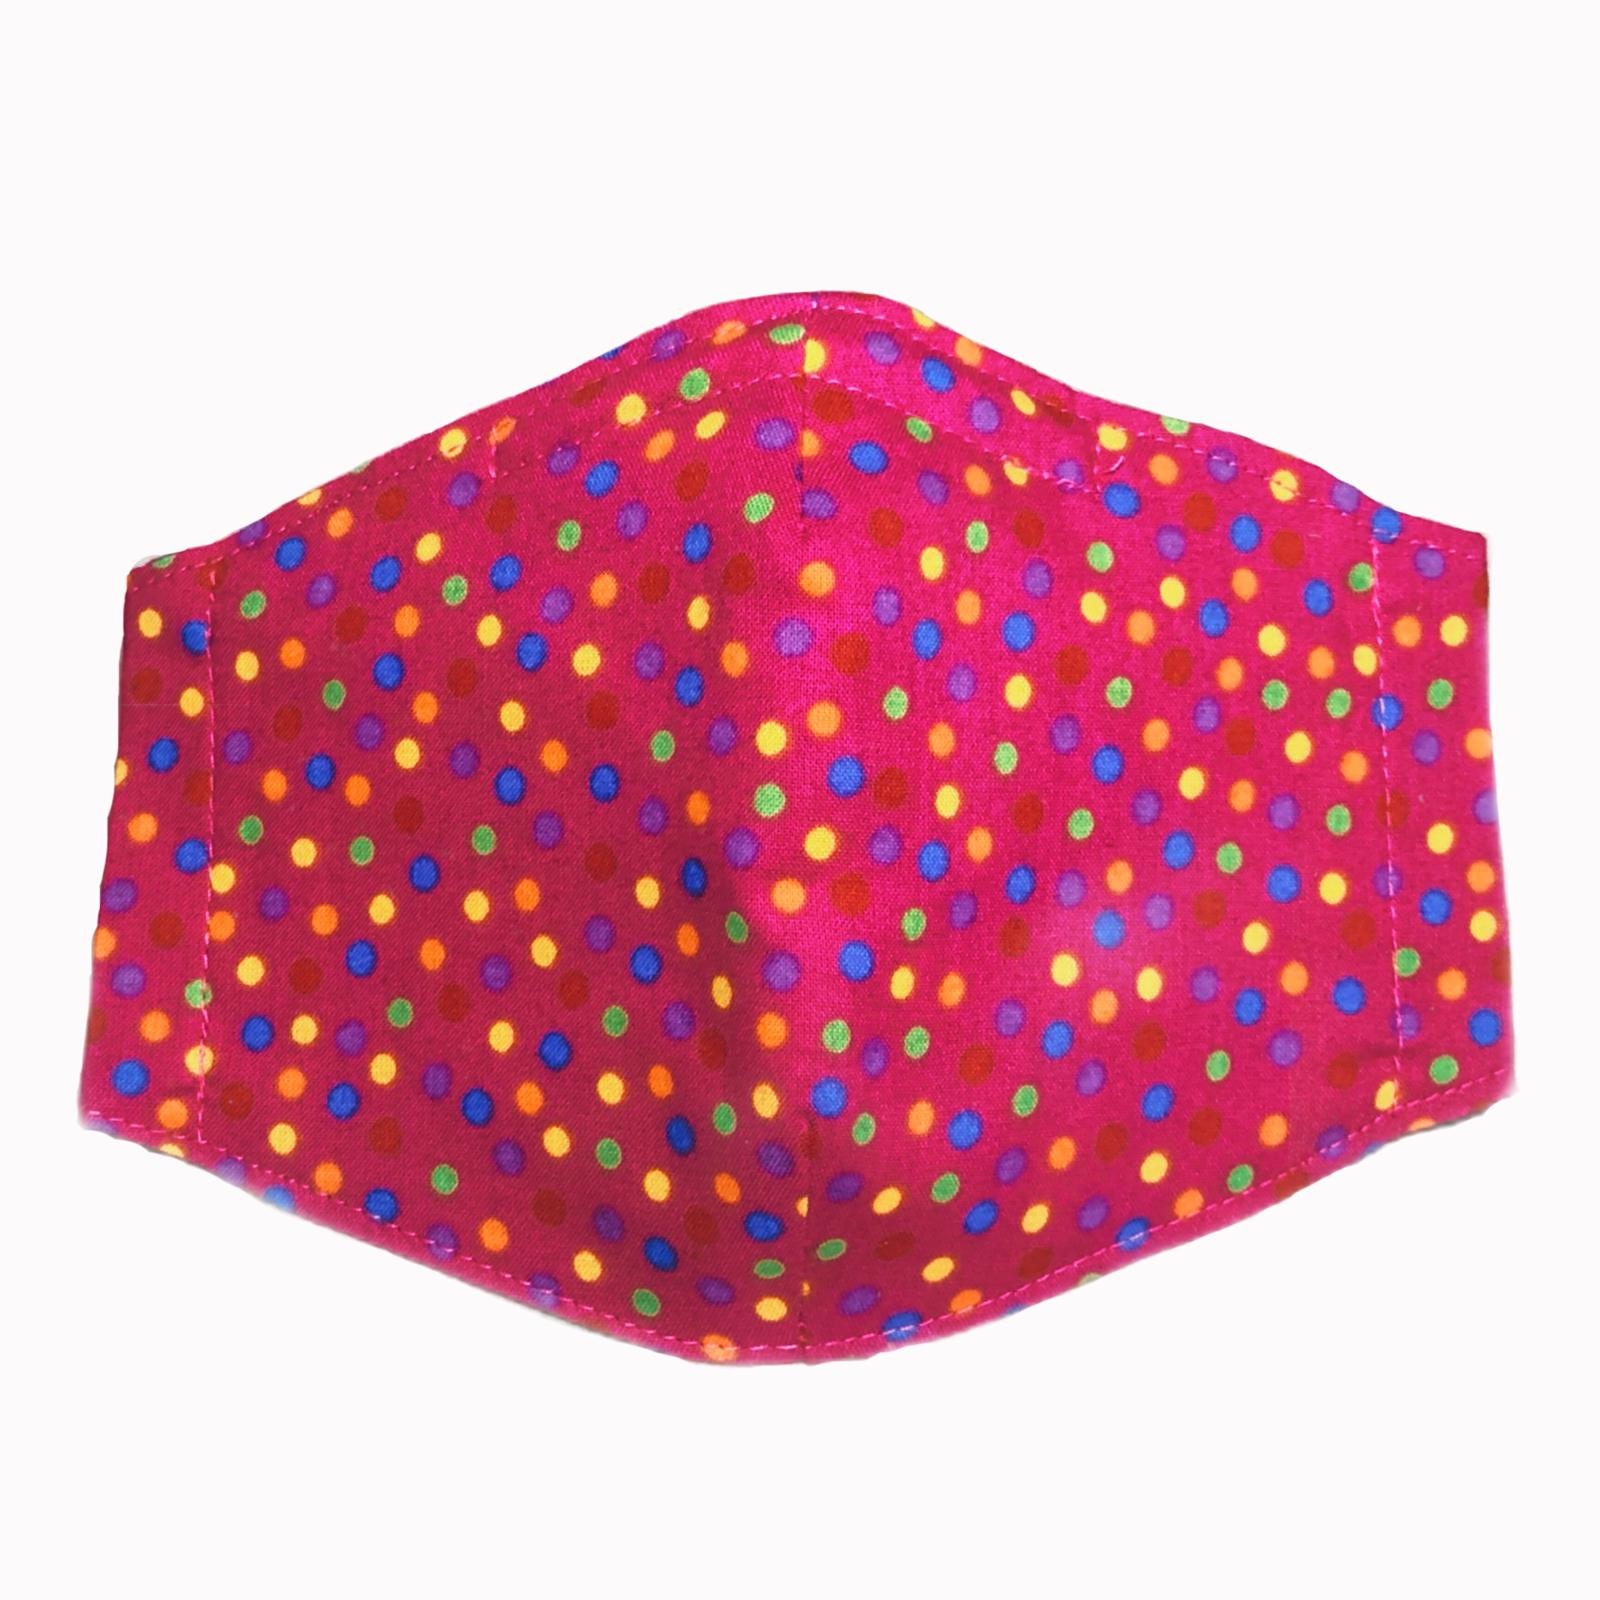 Colorful Dots - Comprar mascarillas reutilizables de tela